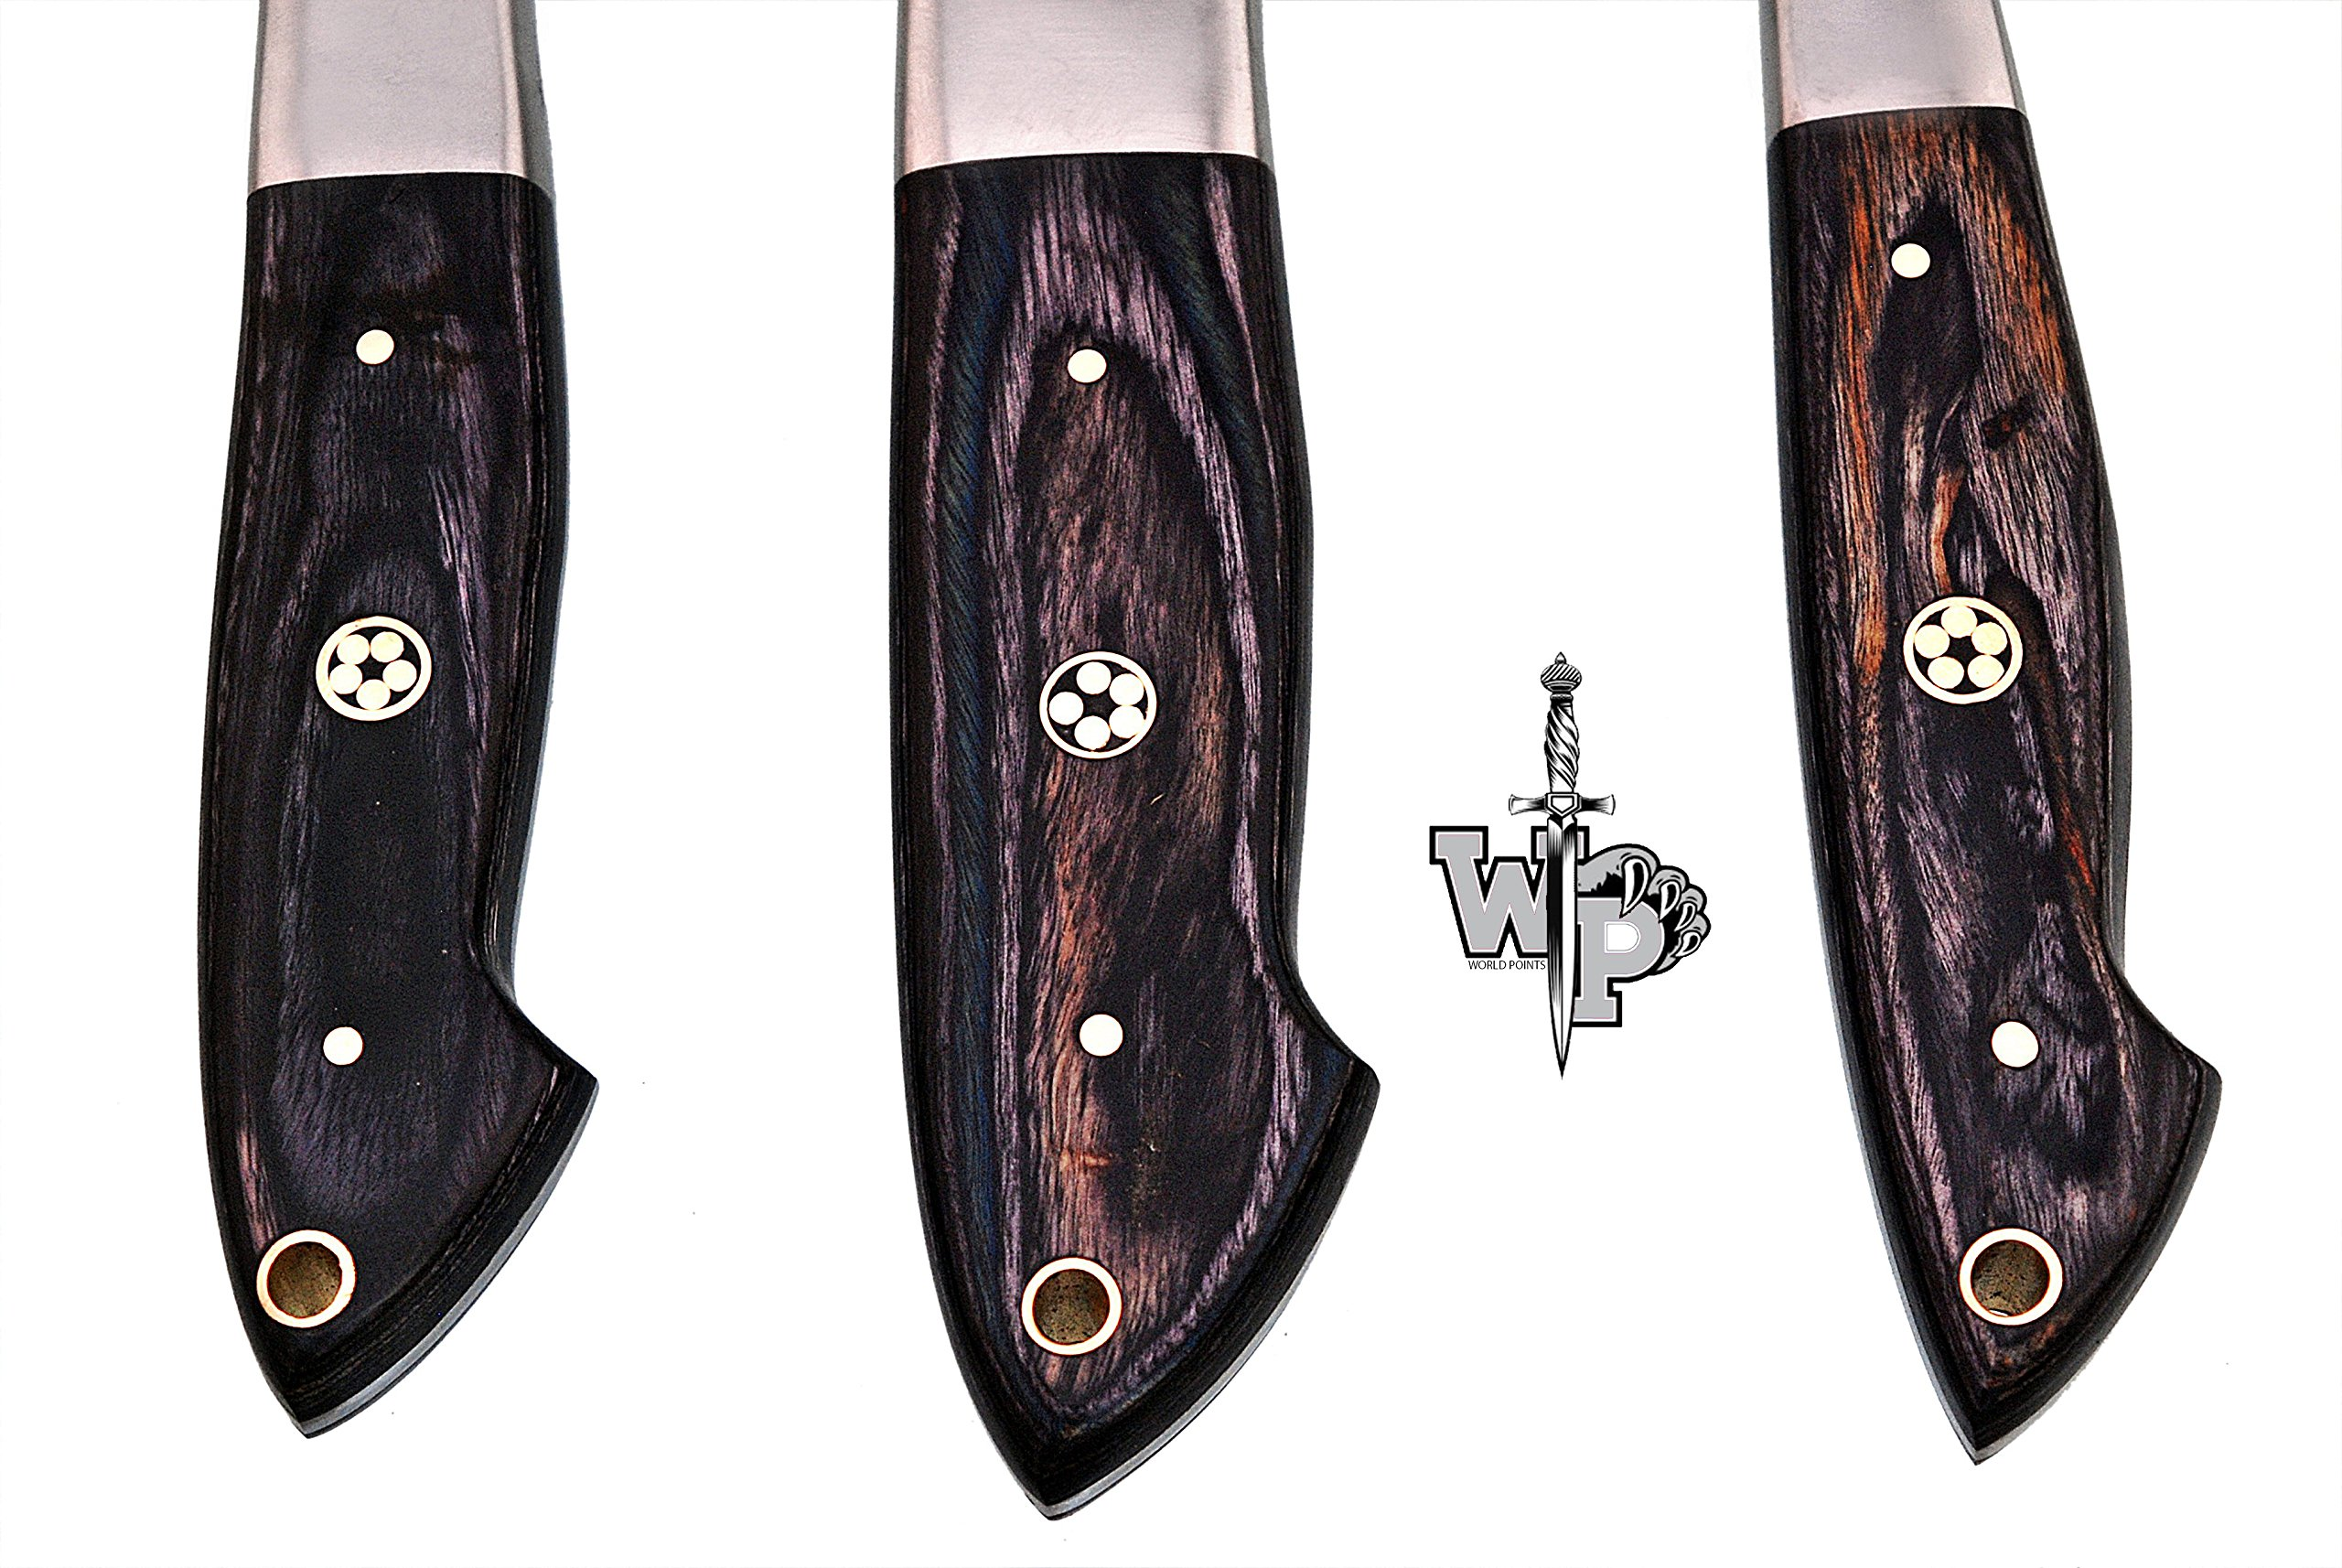 WORLD POINTS CUSTOM MADE DAMASCUS BLADE/KITCHEN CHEF KNIVES SET-3-PIECE (Black Wood) by World Points (Image #4)